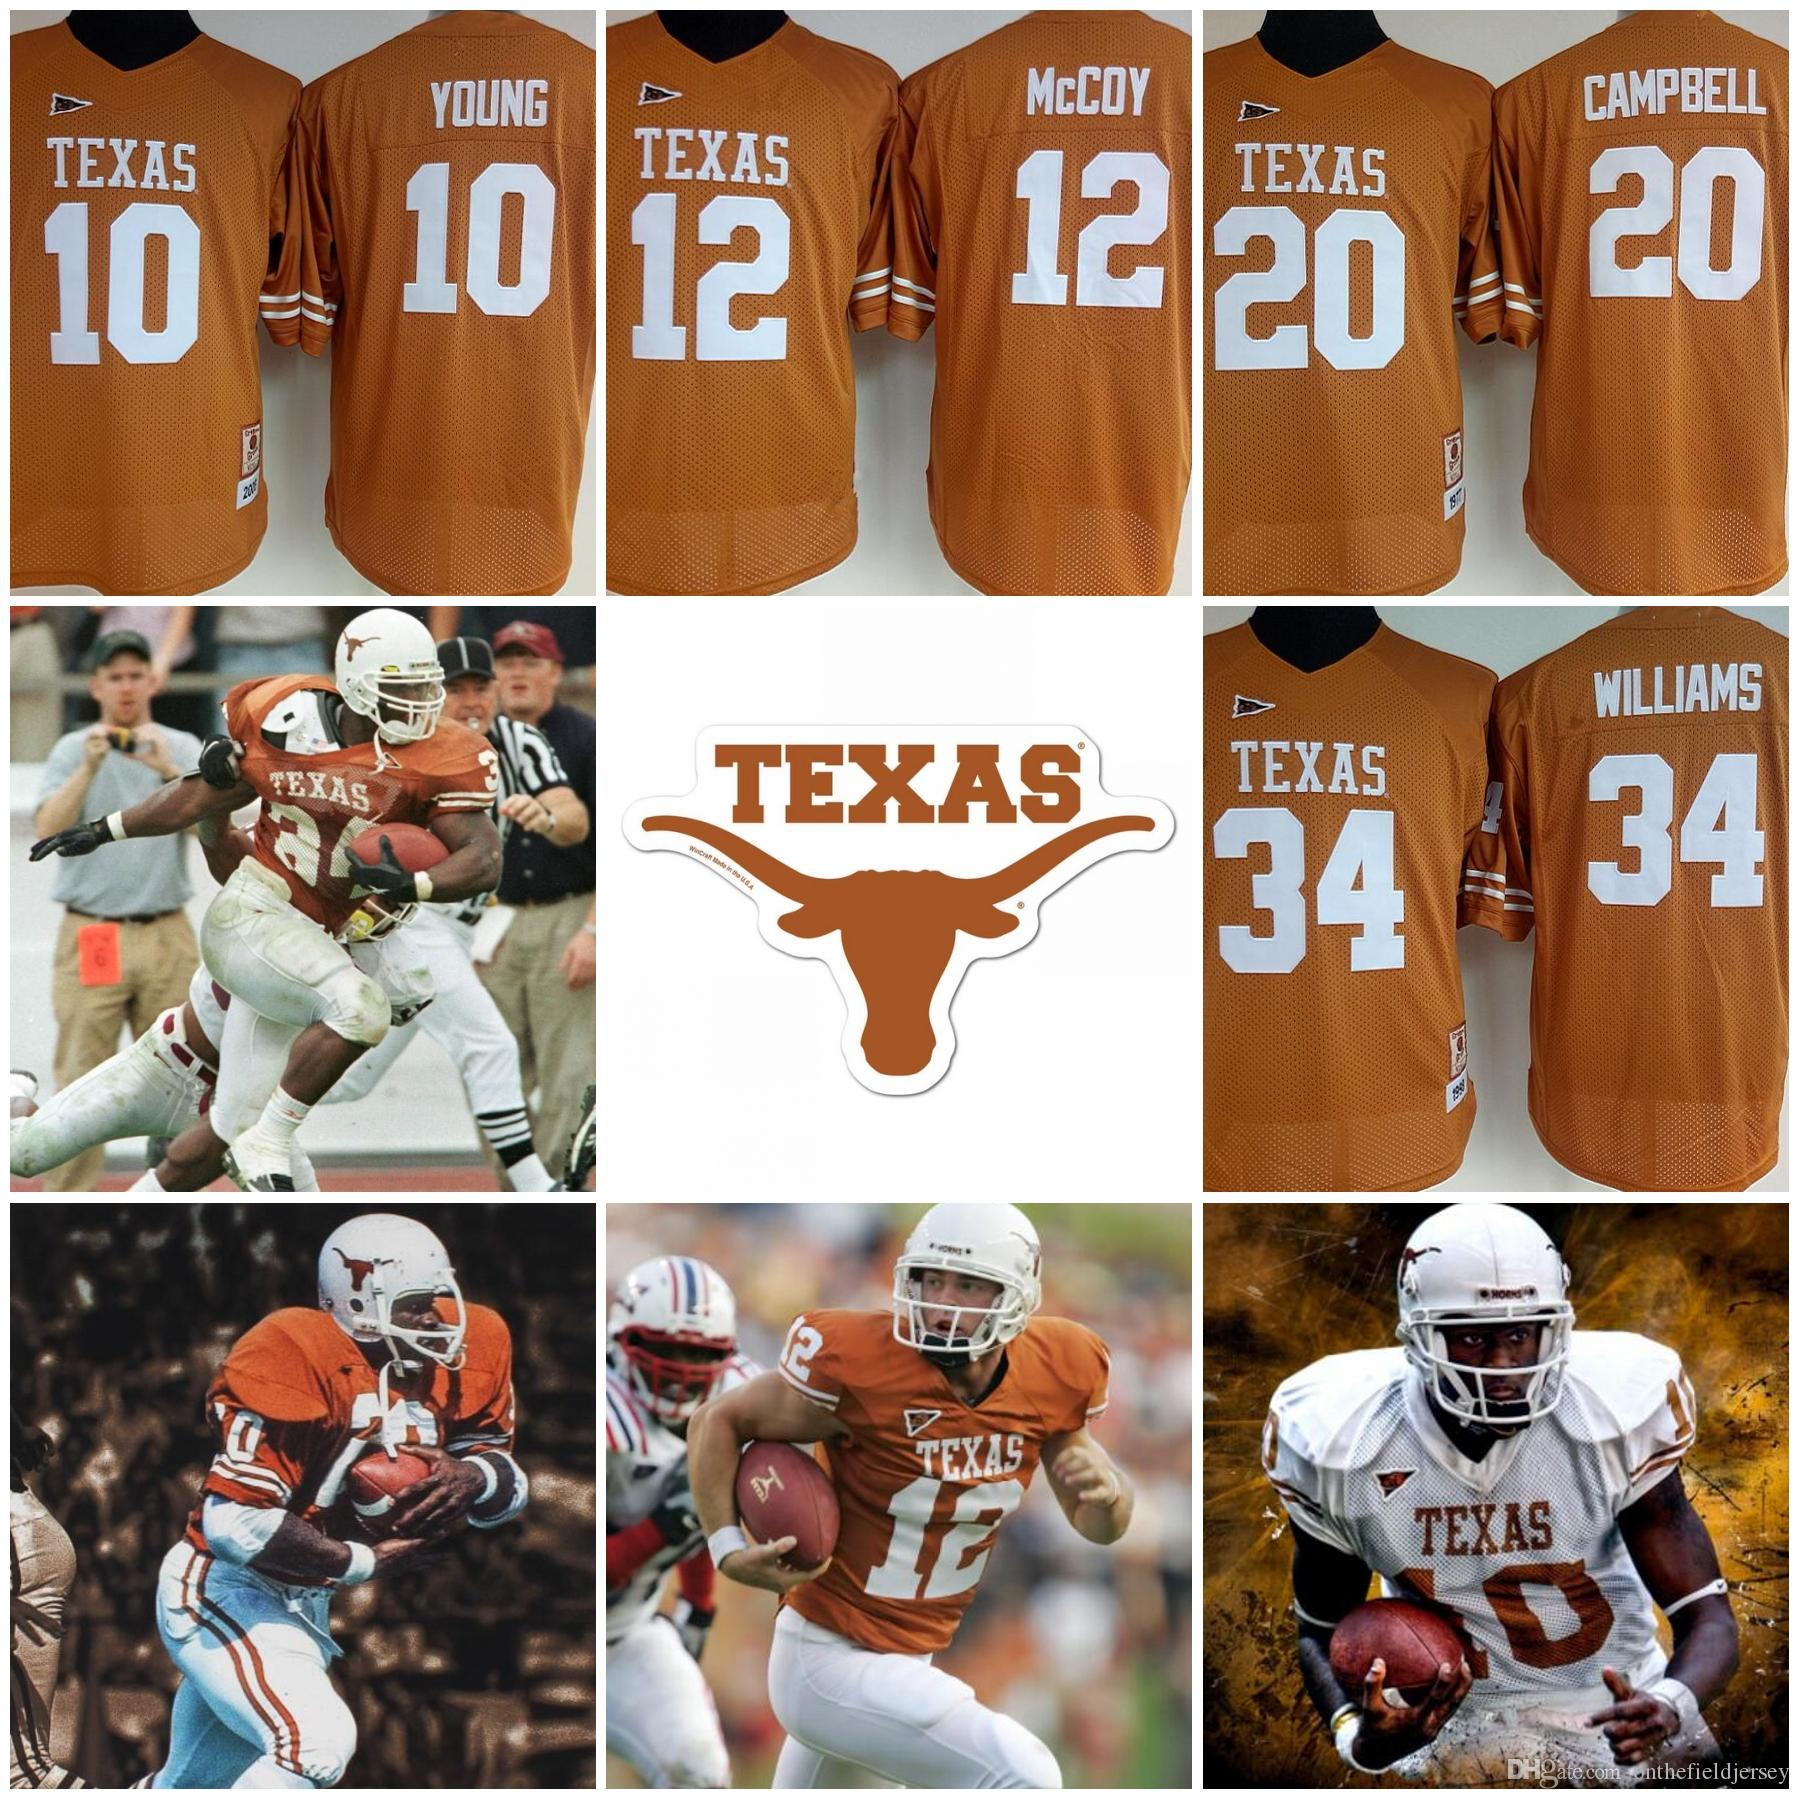 b60724c4d 2019 Texas Longhorns Womens Youth #10 Vince Young 12 Colt McCoy 20 Earl  Campbell 34 Ricky William Retro Orange NCAA Football Jerseys S 2XL From ...